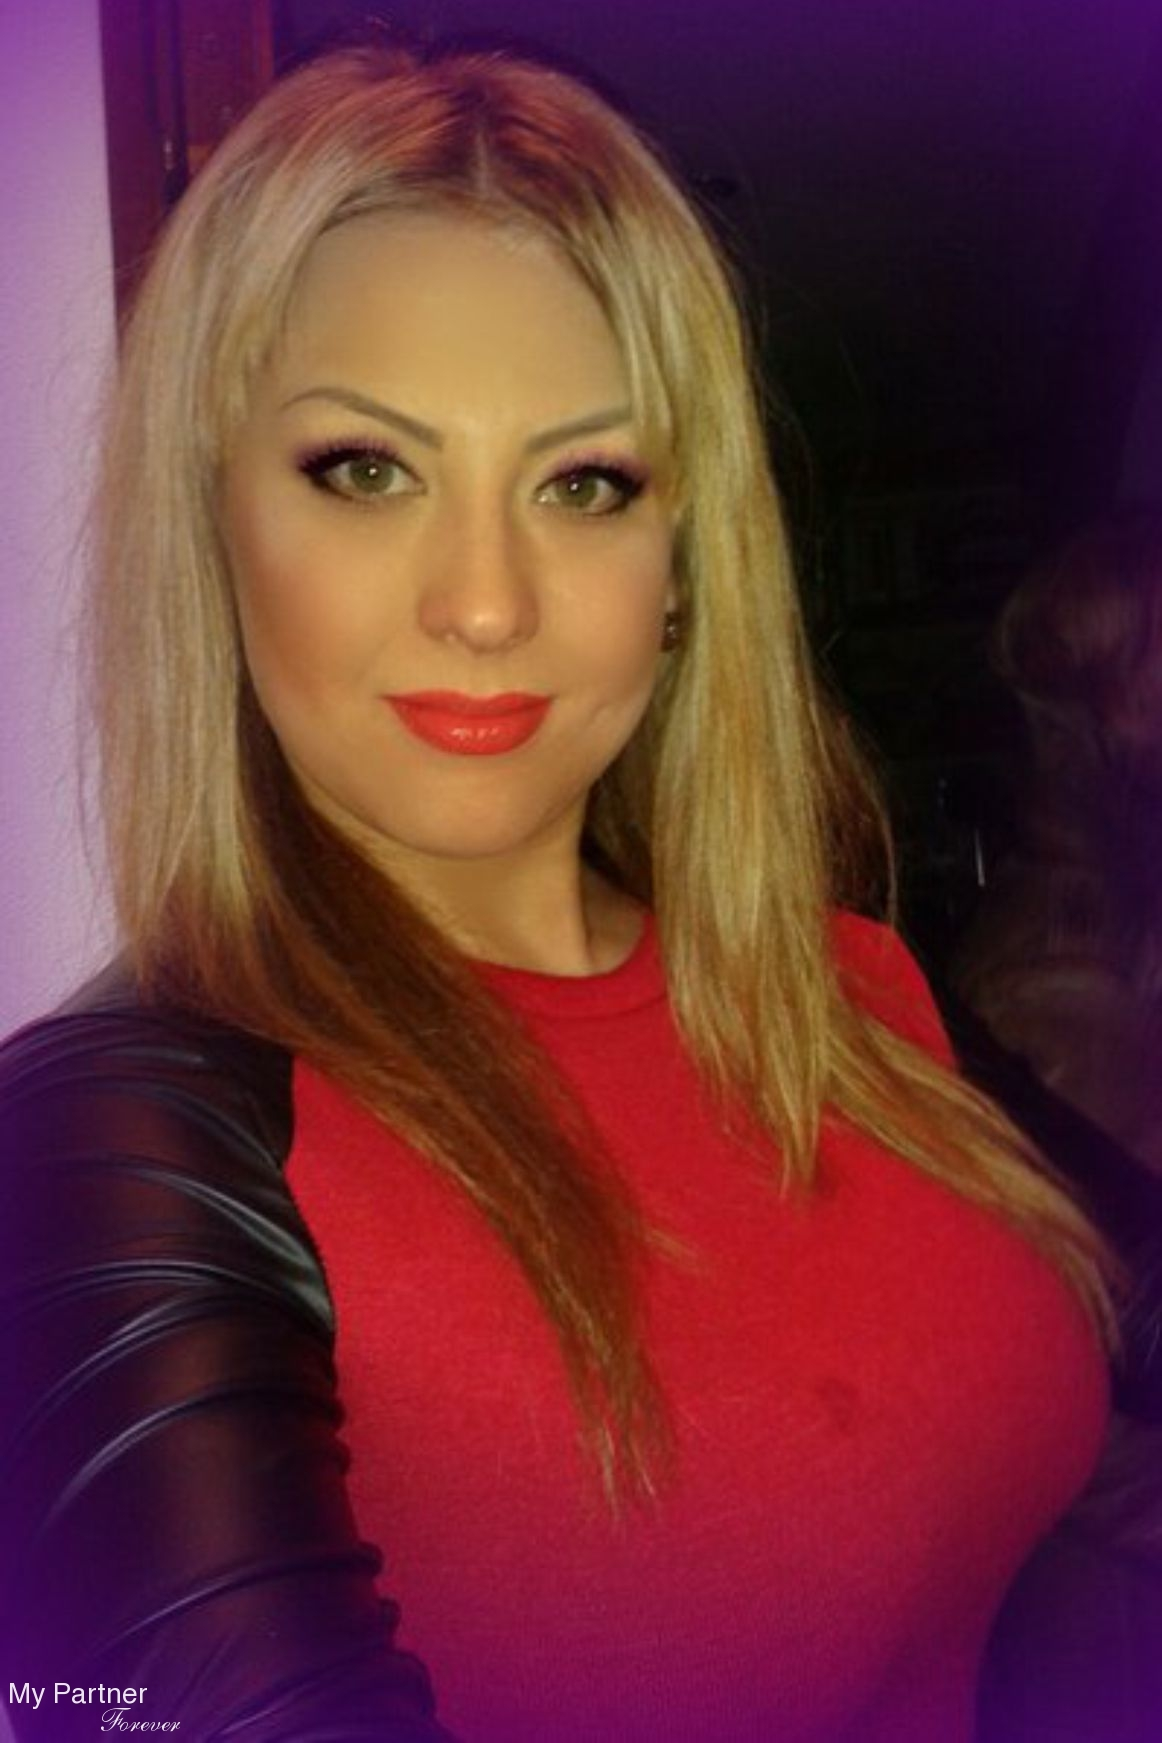 Woman free dating chicago